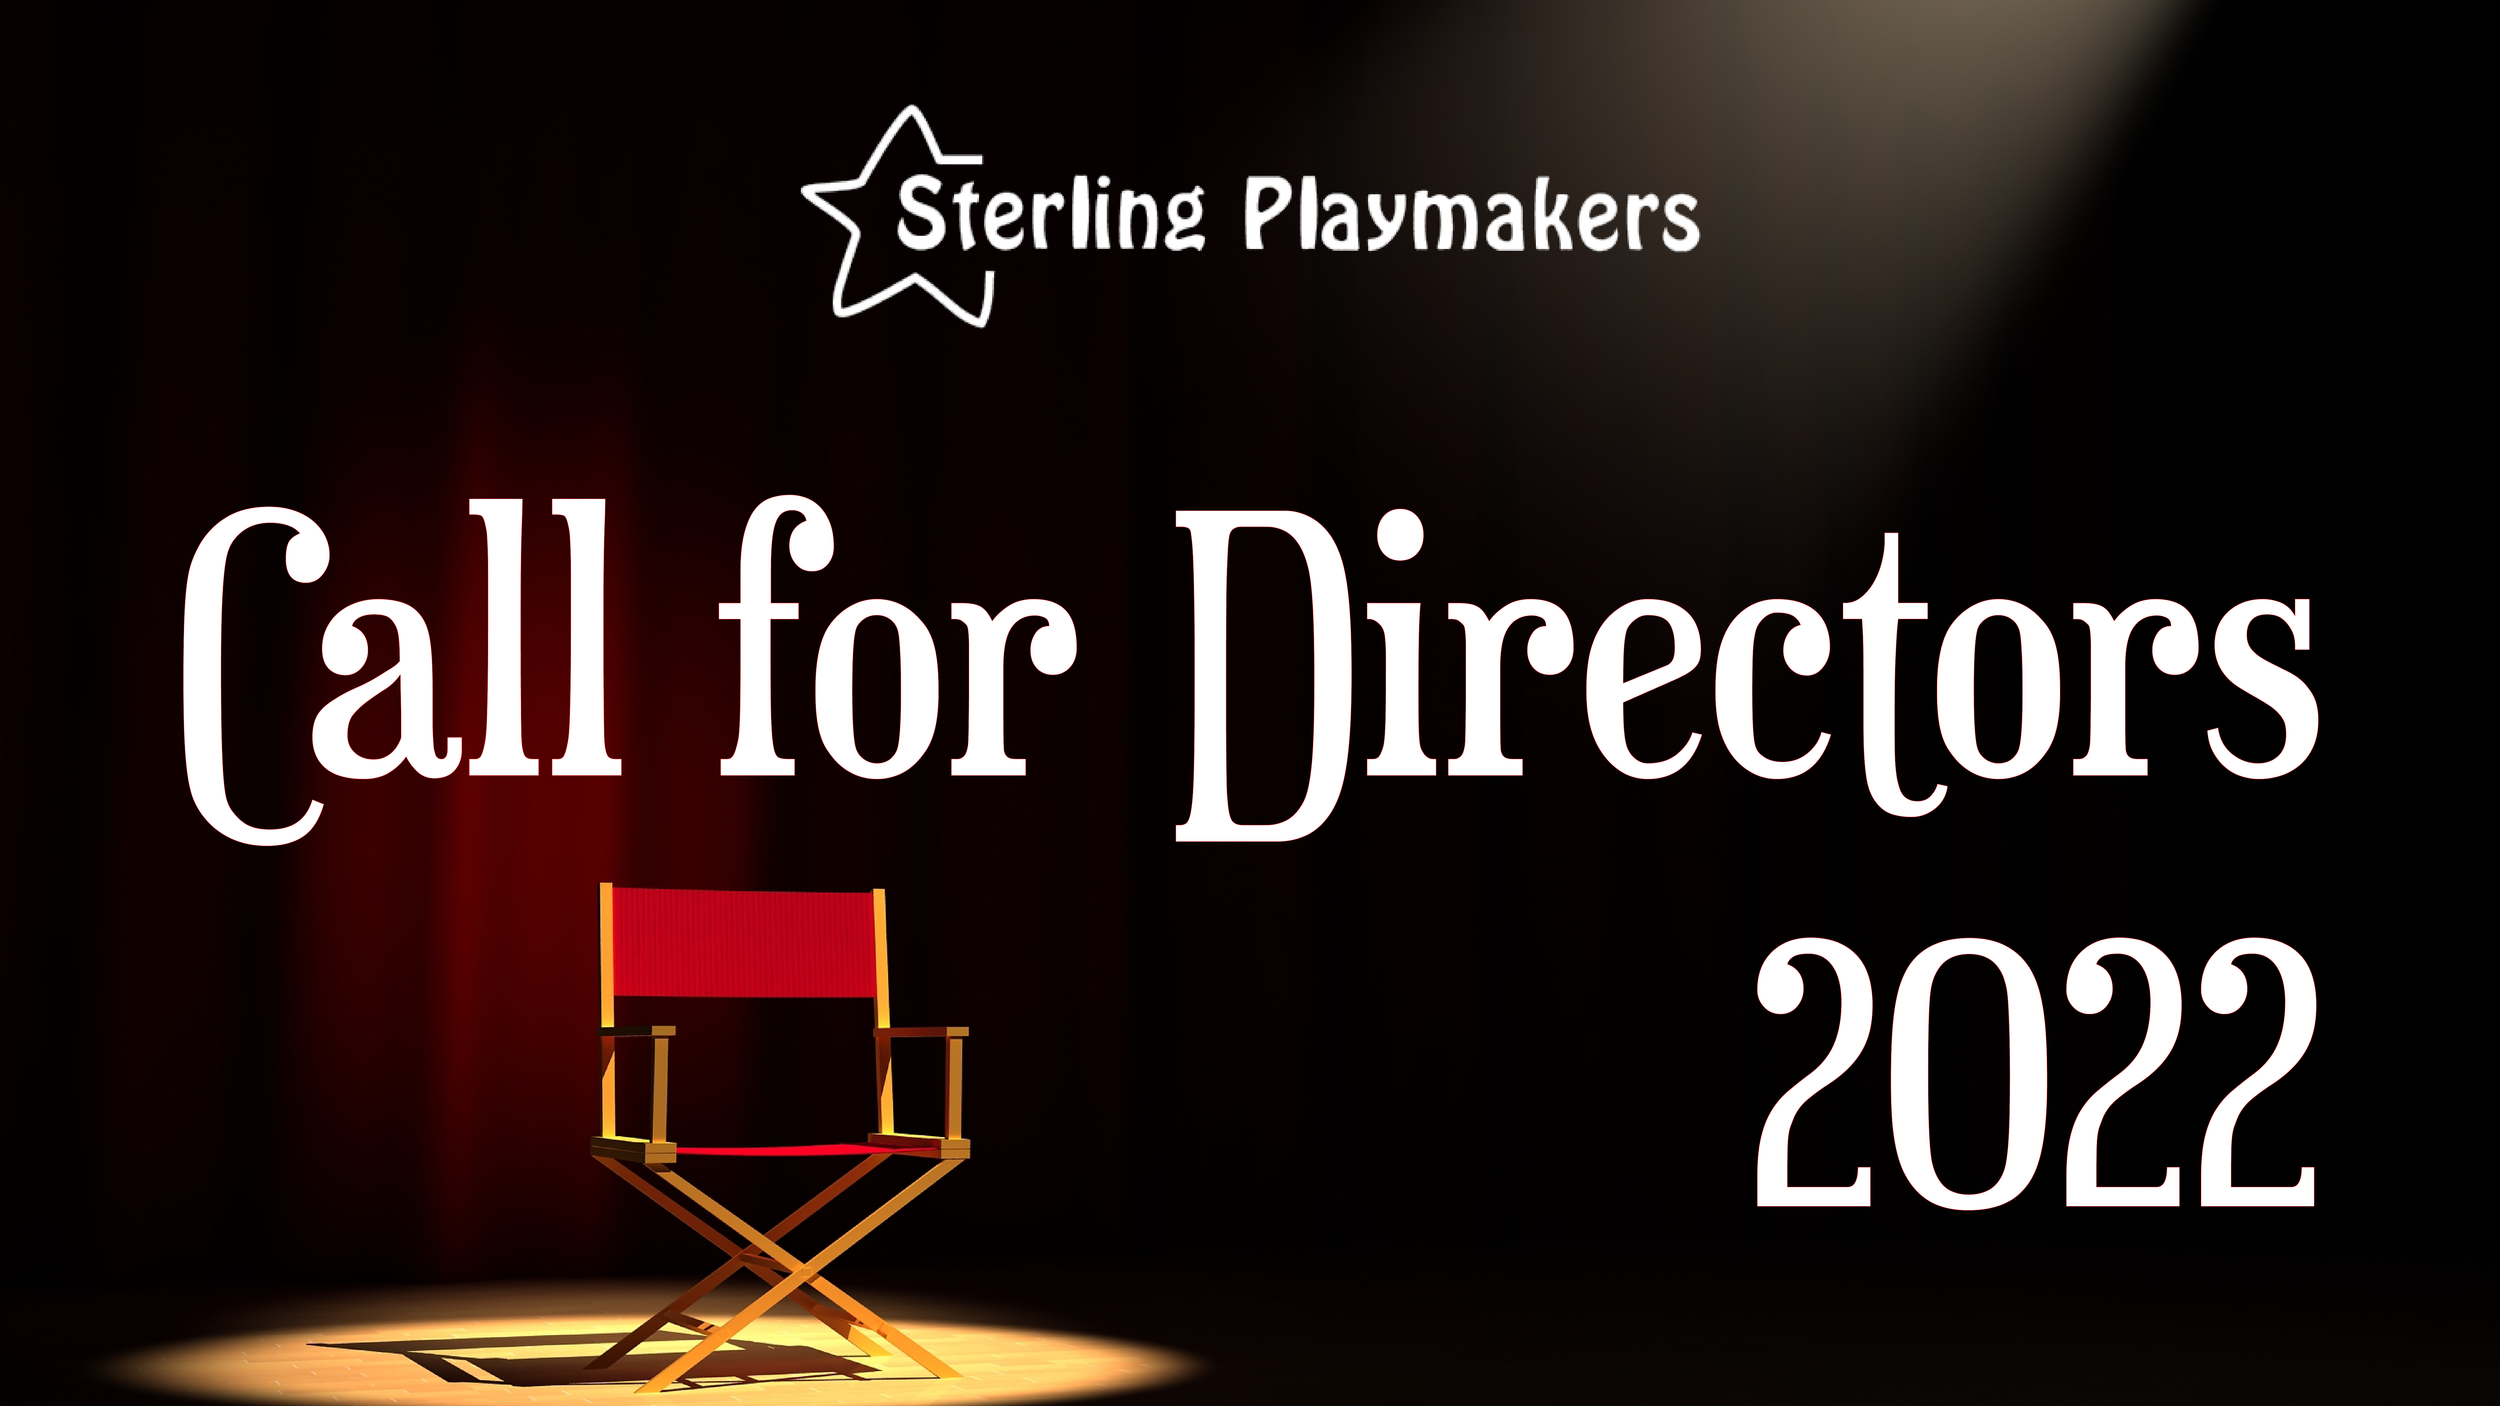 Birchmere Calendar 2022.Call For Directors 2022 Sterling Playmakers